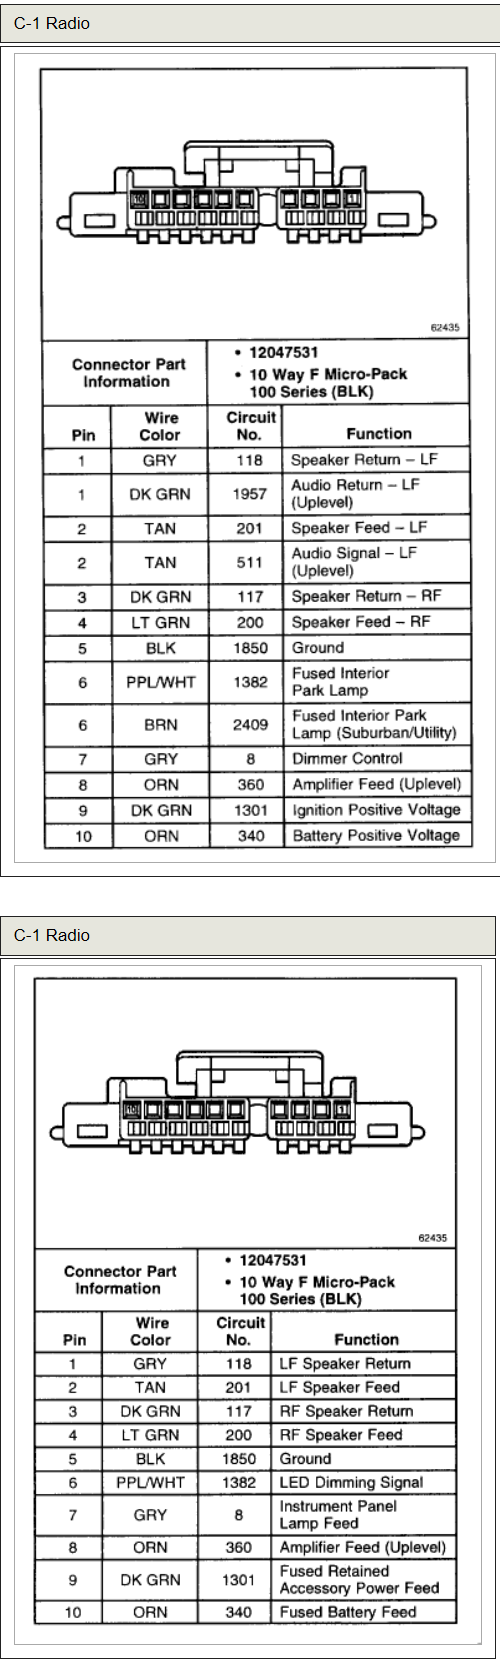 1997 Tahoe Radio Wiring Diagram -Fuse Box Green | Begeboy Wiring Diagram  Source | 97 Tahoe Wiring Schematic |  | Begeboy Wiring Diagram Source